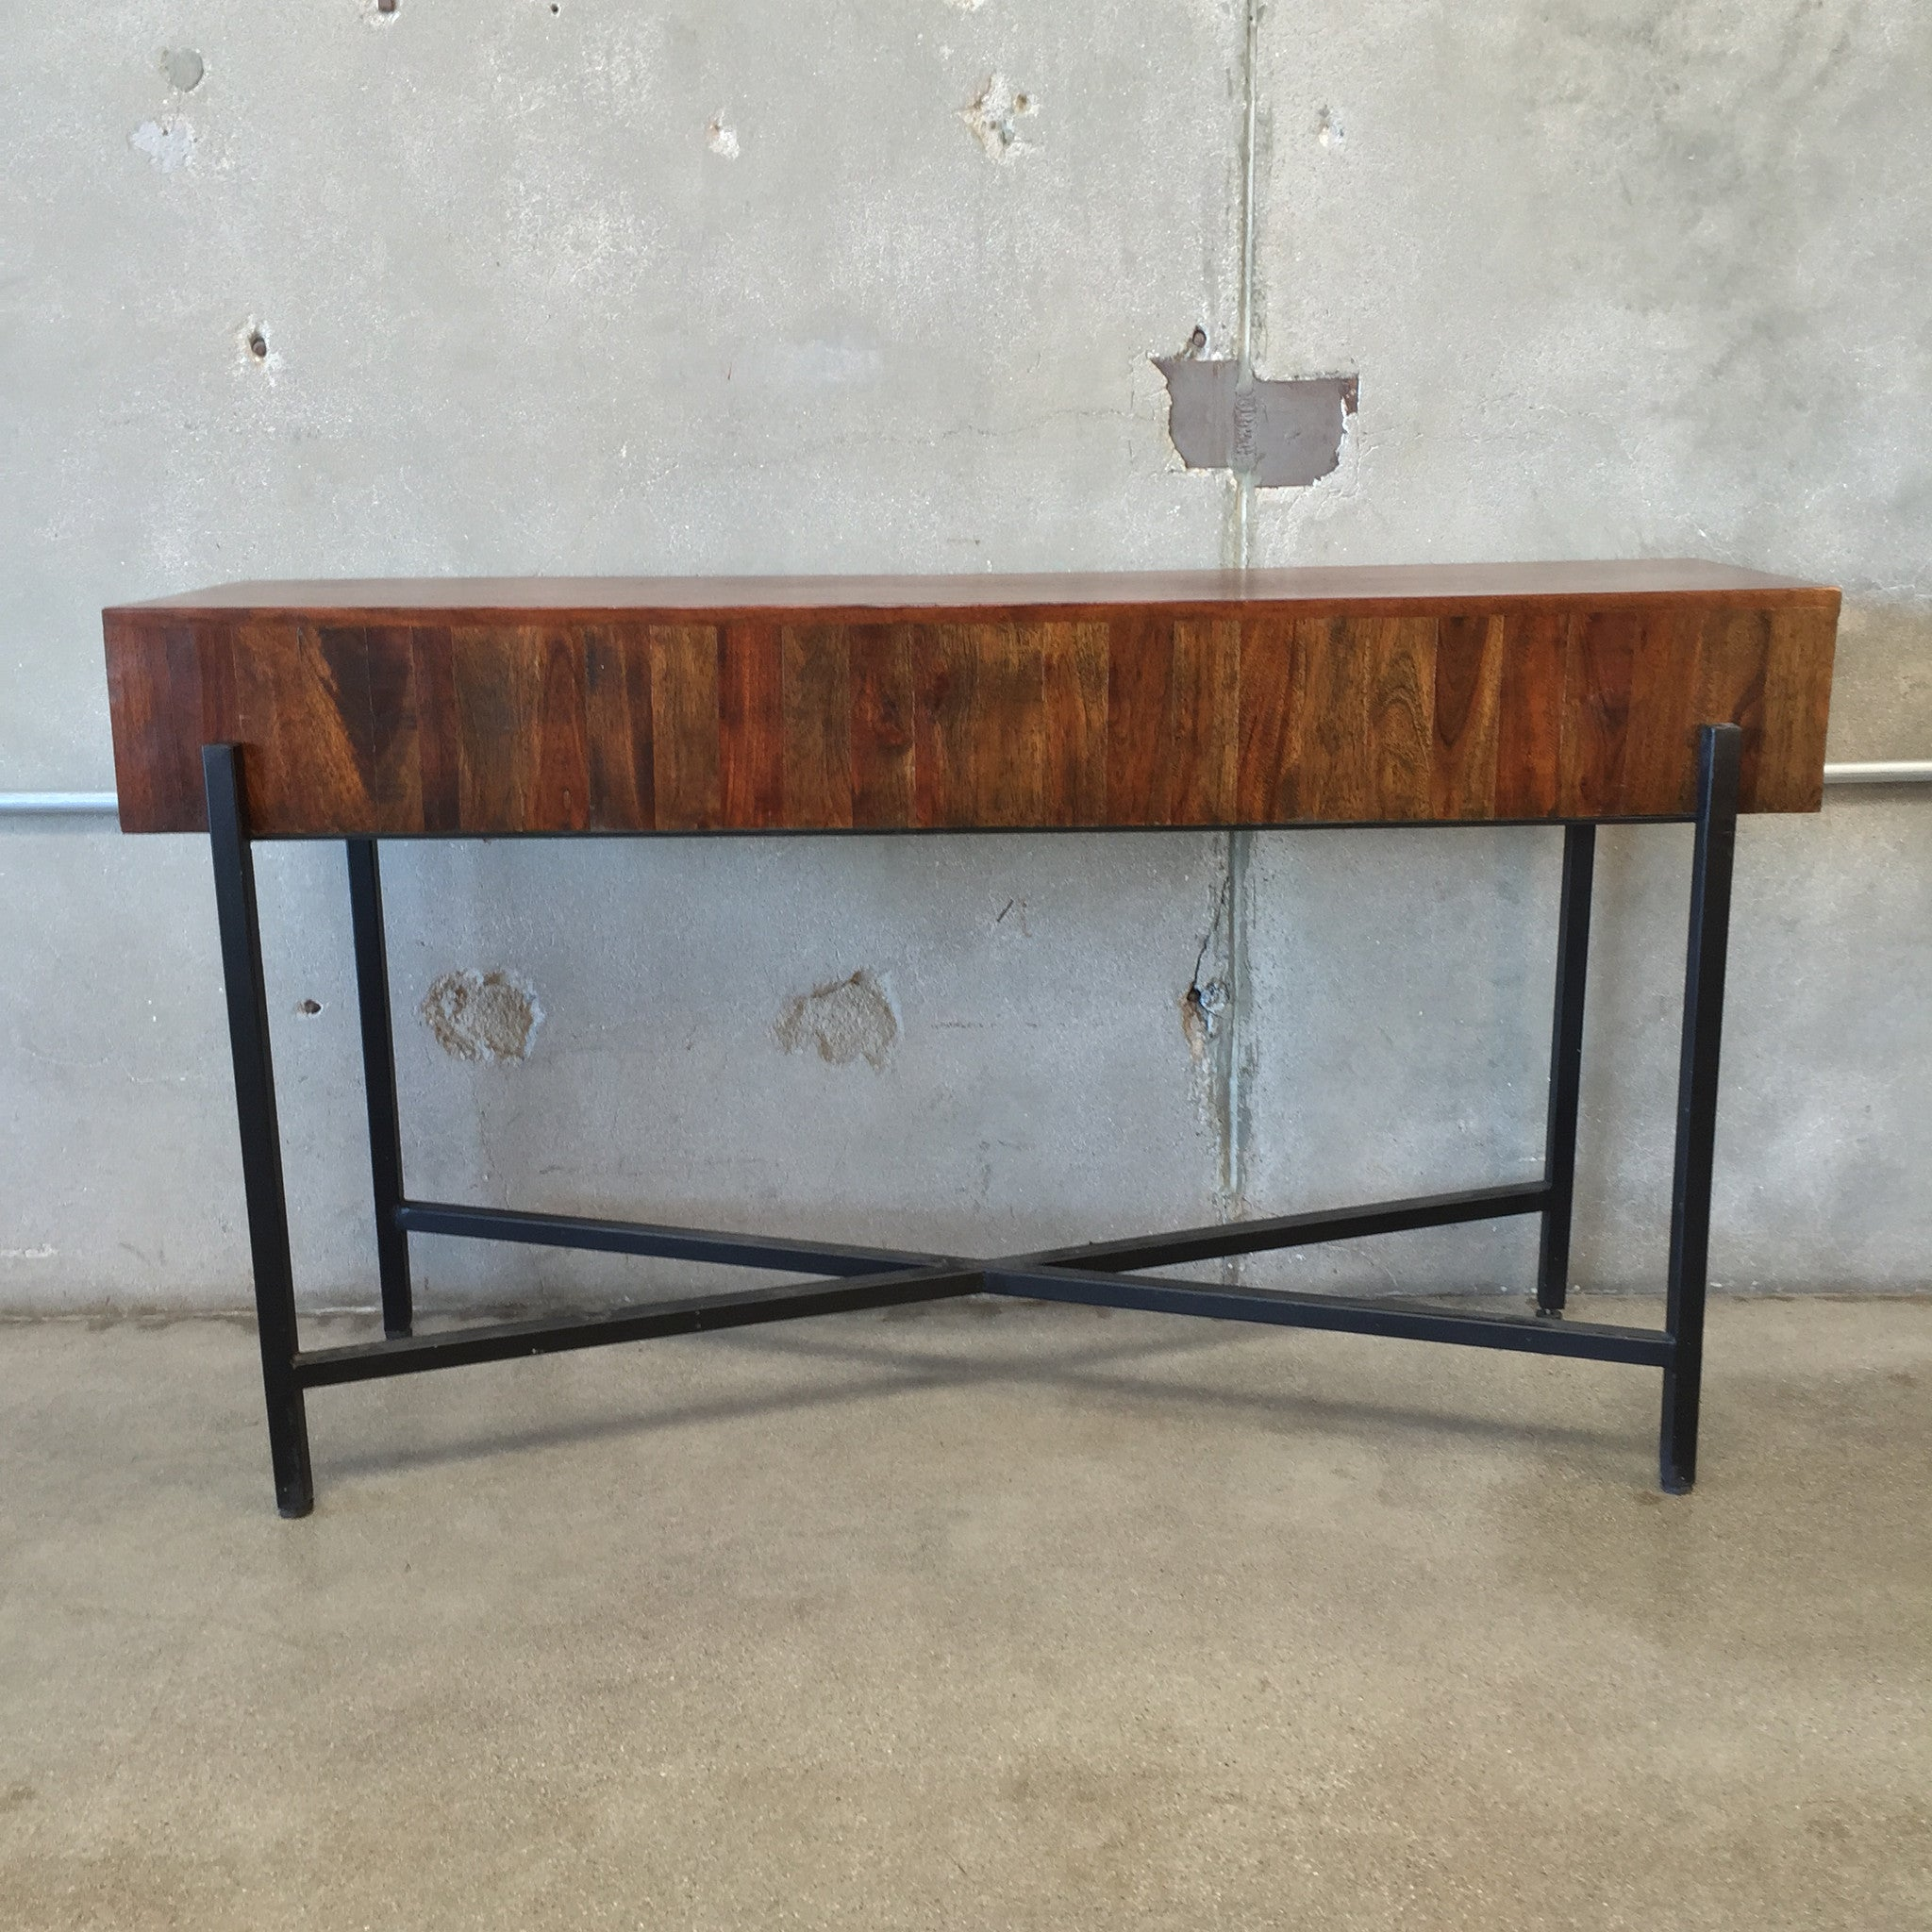 Wooden Sofa Table with Metal Frame UrbanAmericana